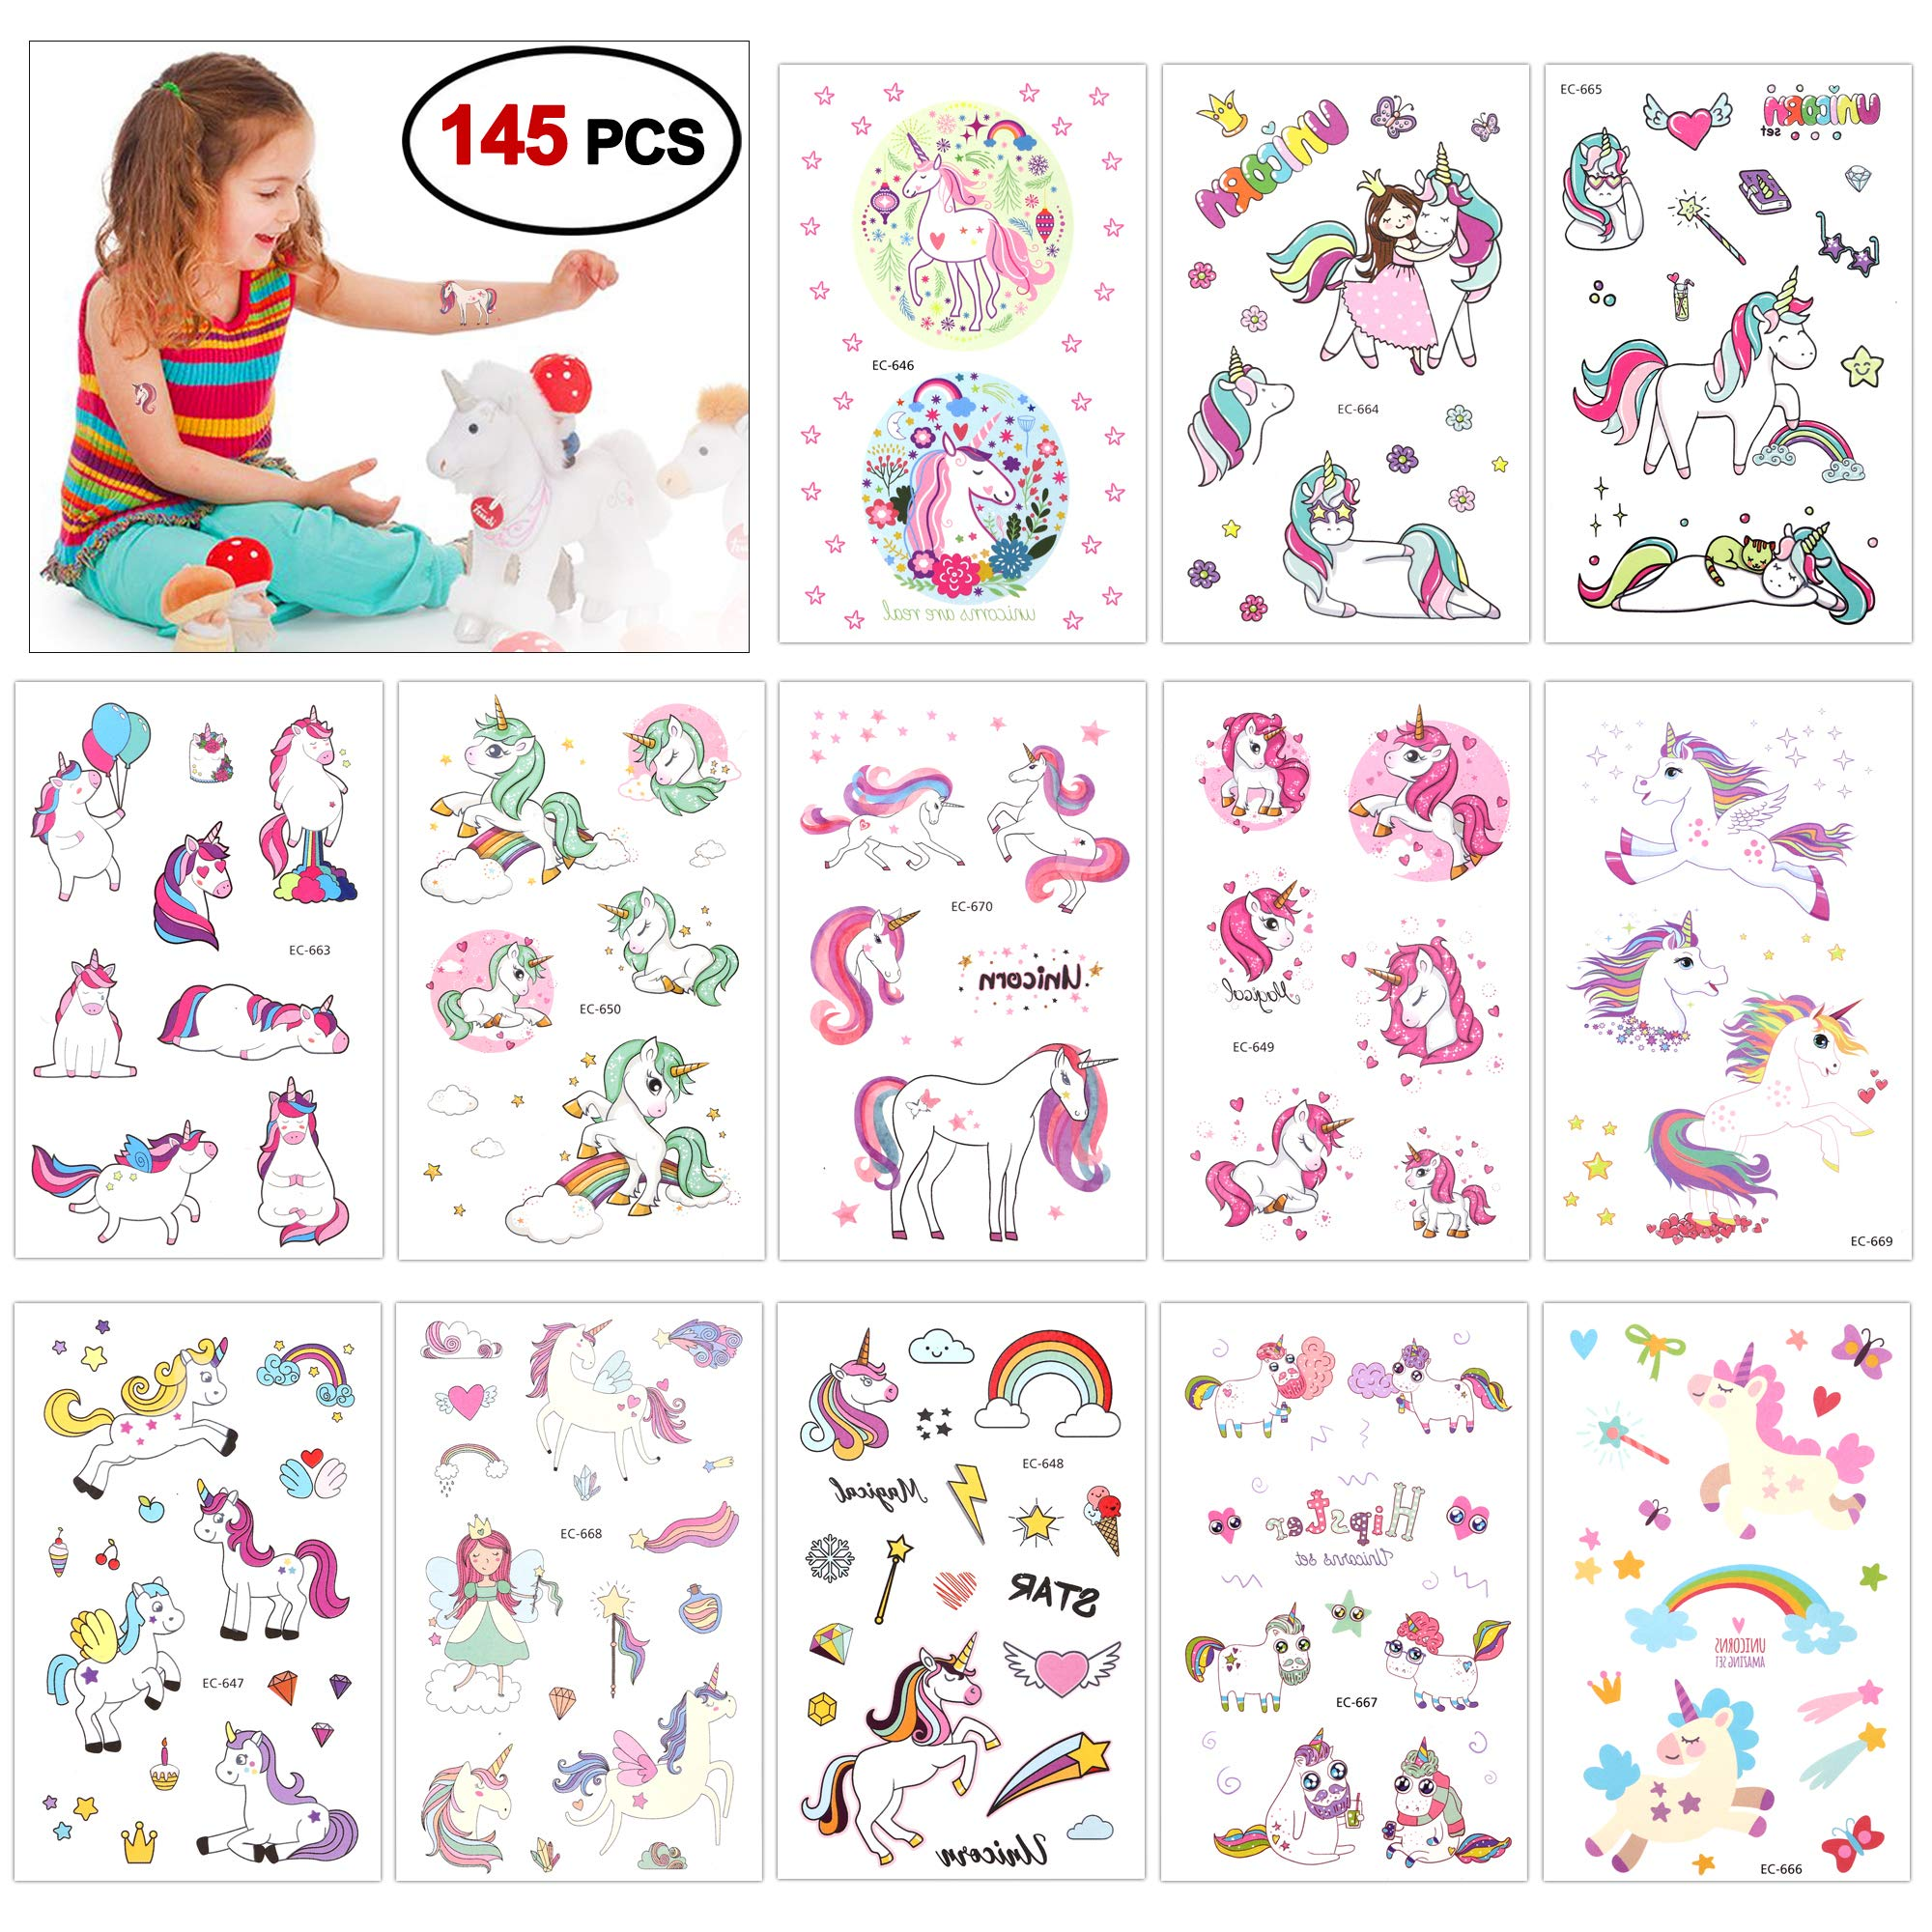 Temporary Tattoos for Kids ,Konsait Glitter Unicorn Tattoos for Children Girls Birthday Party Favors Supplies Great Kids Party Accessories Goodie Bag Stuffers Party Fillers Halloween Costume 98pcs